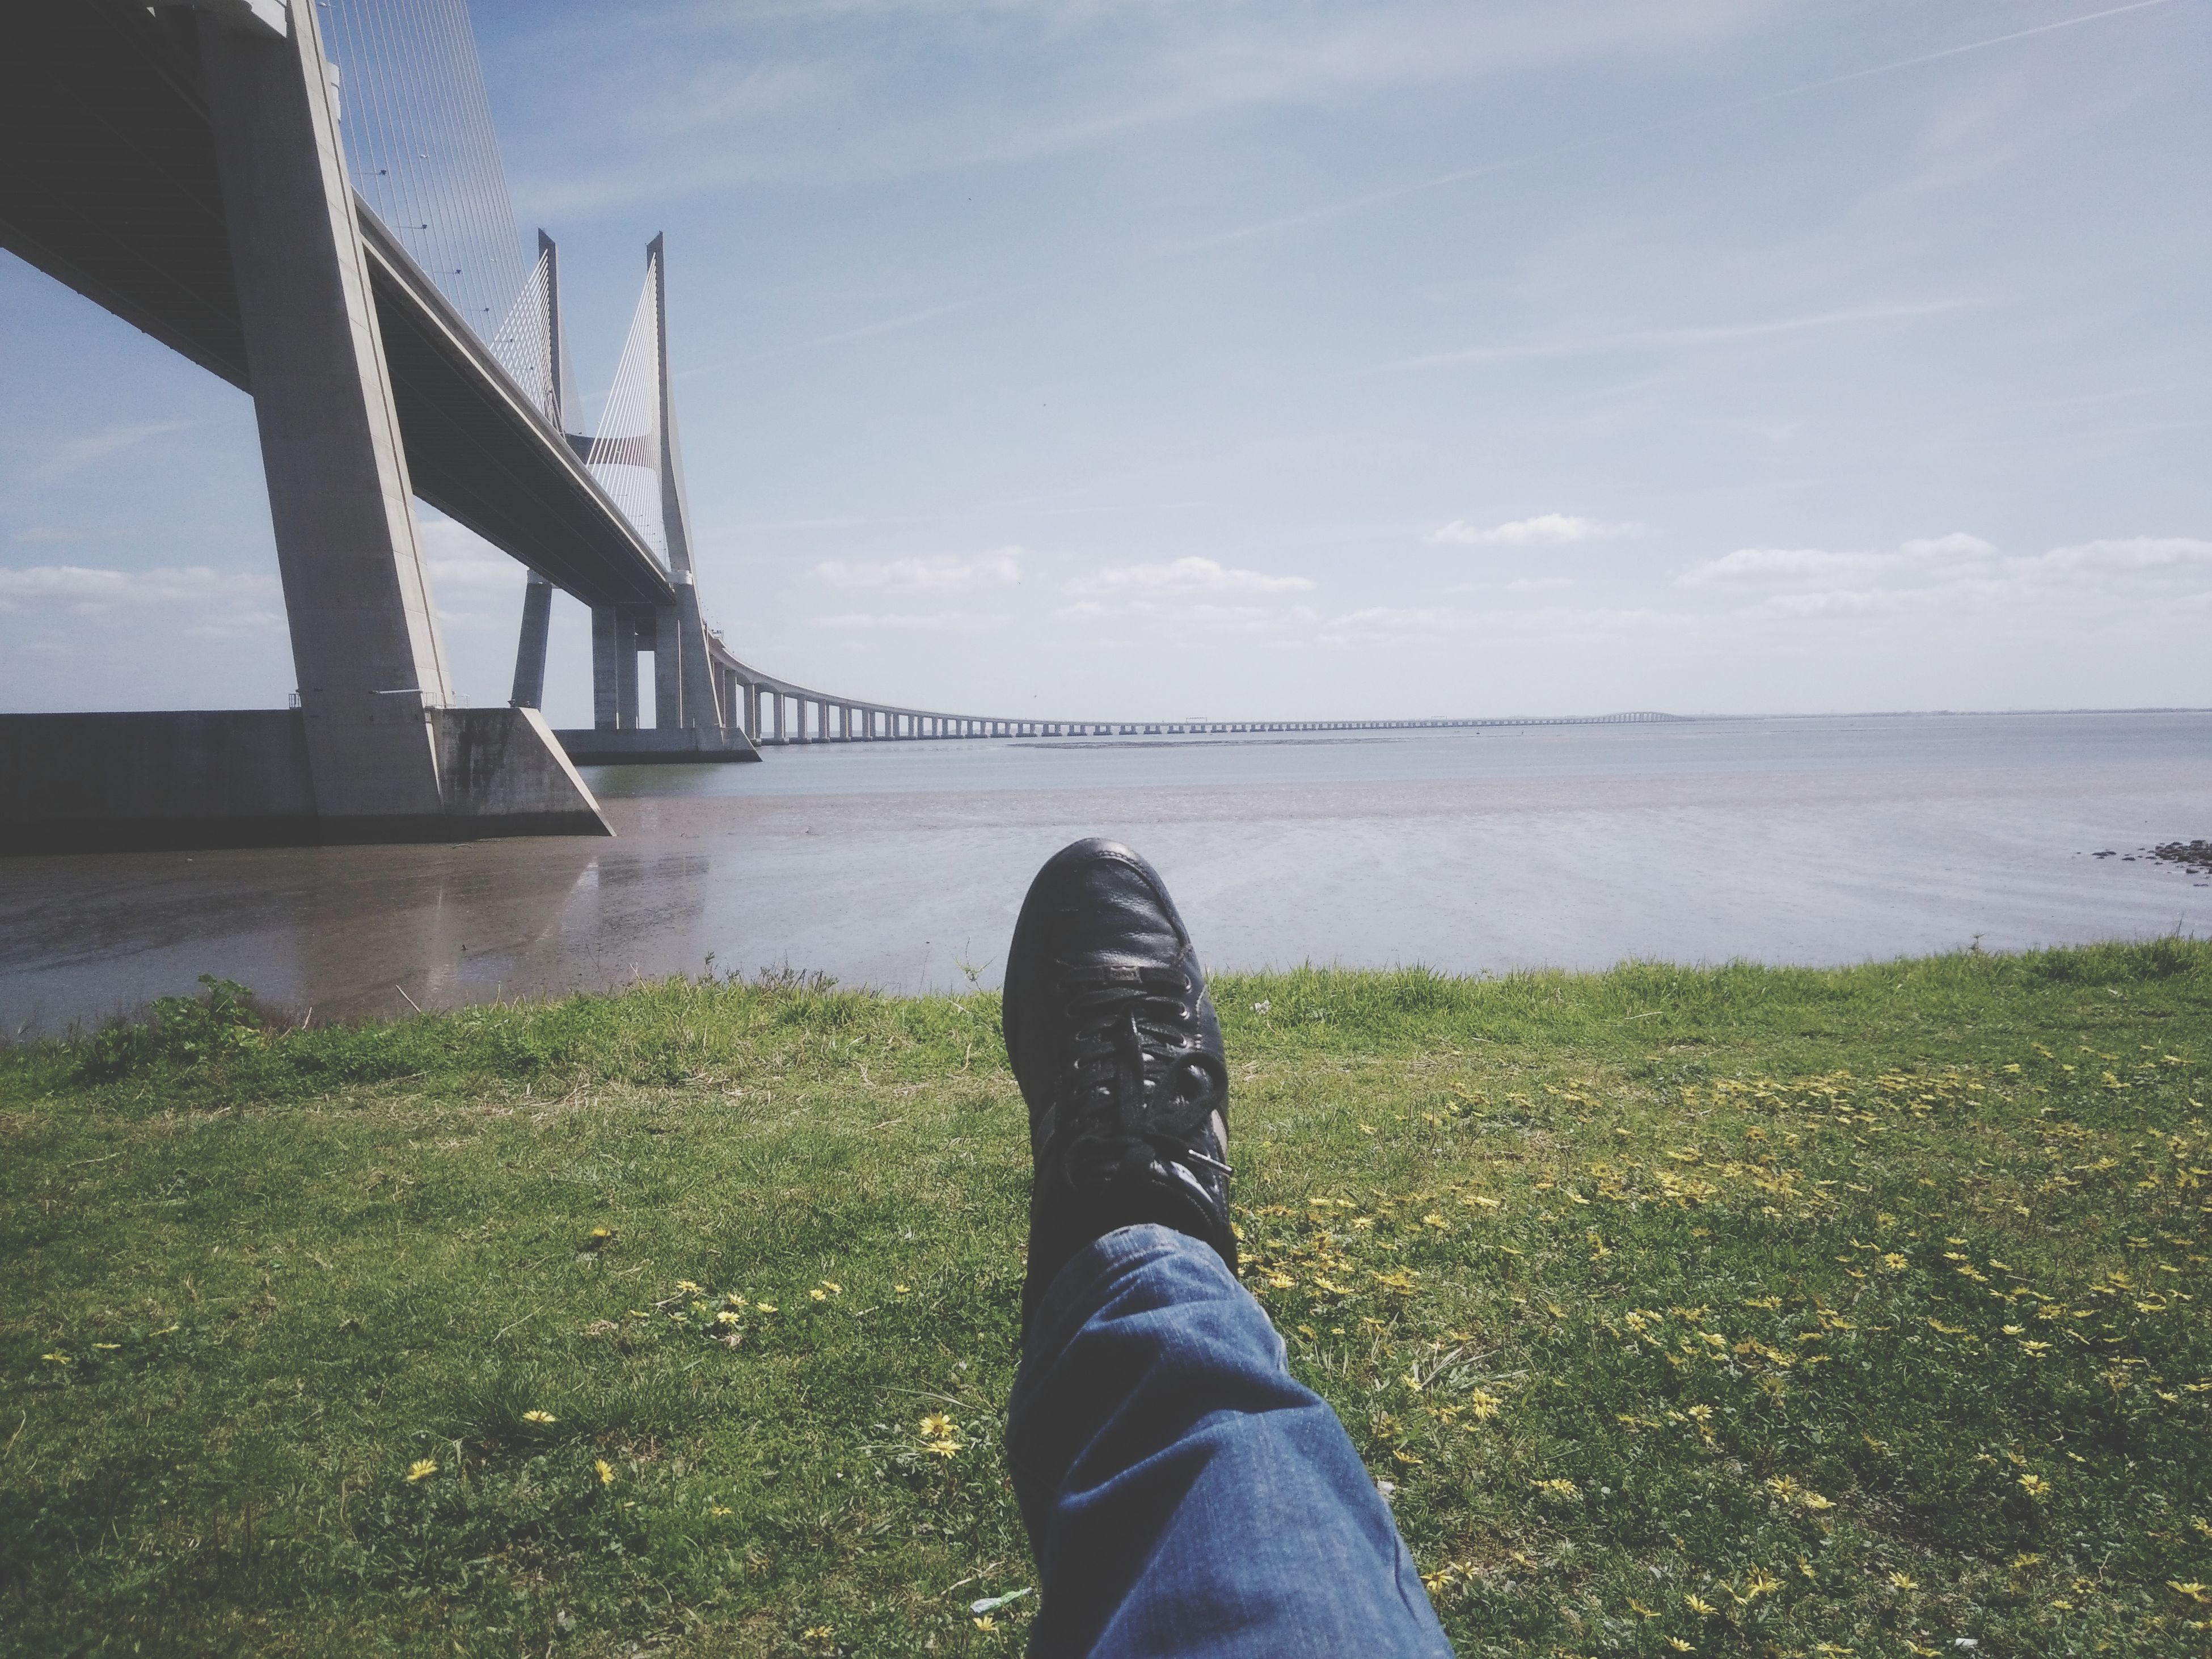 bridge - man made structure, human leg, low section, water, grass, connection, river, personal perspective, cloud - sky, day, sky, shoe, outdoors, one person, real people, human body part, nature, architecture